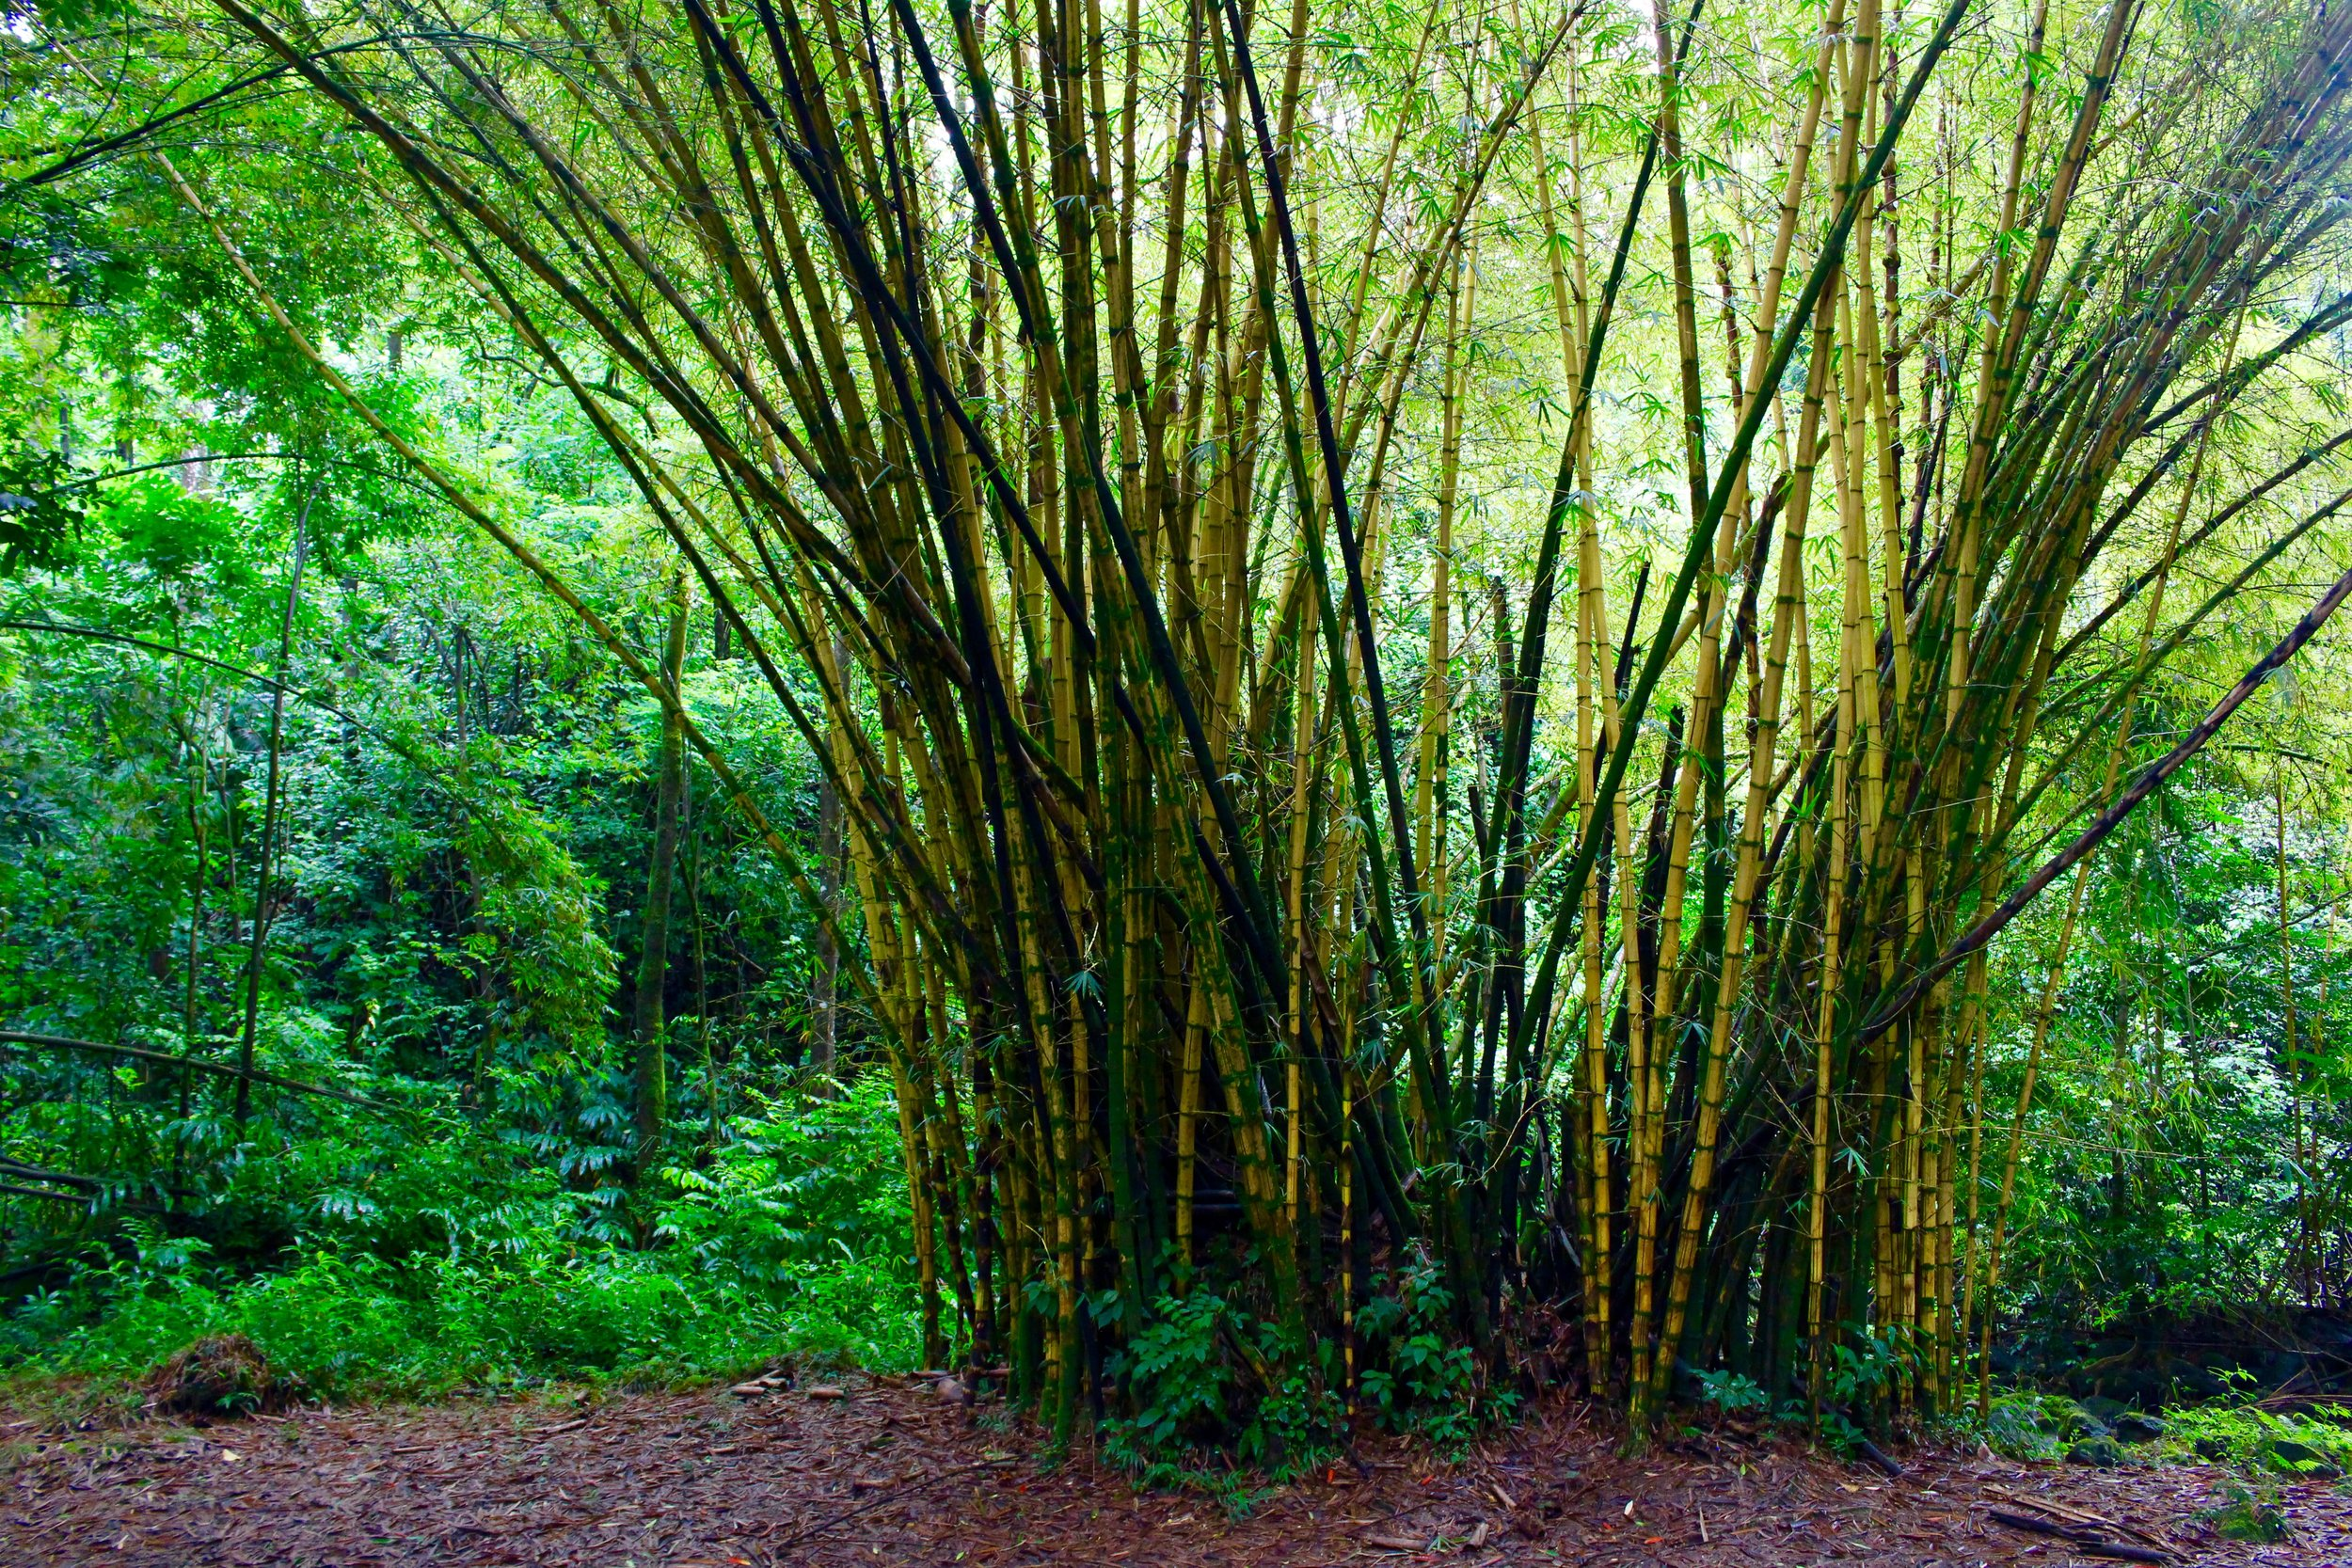 A patch of golden bamboo.